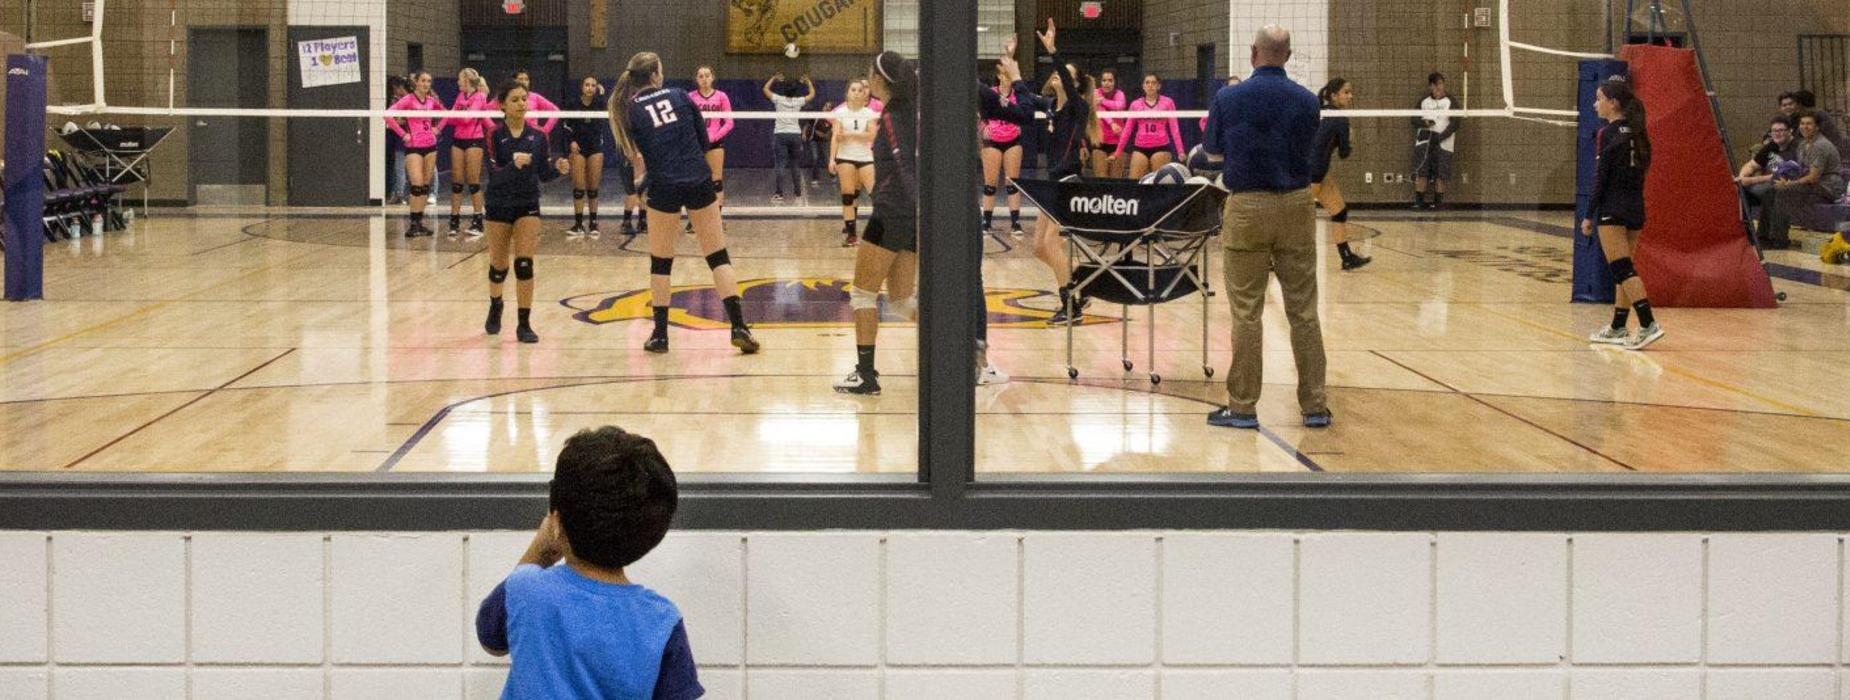 student volleyball